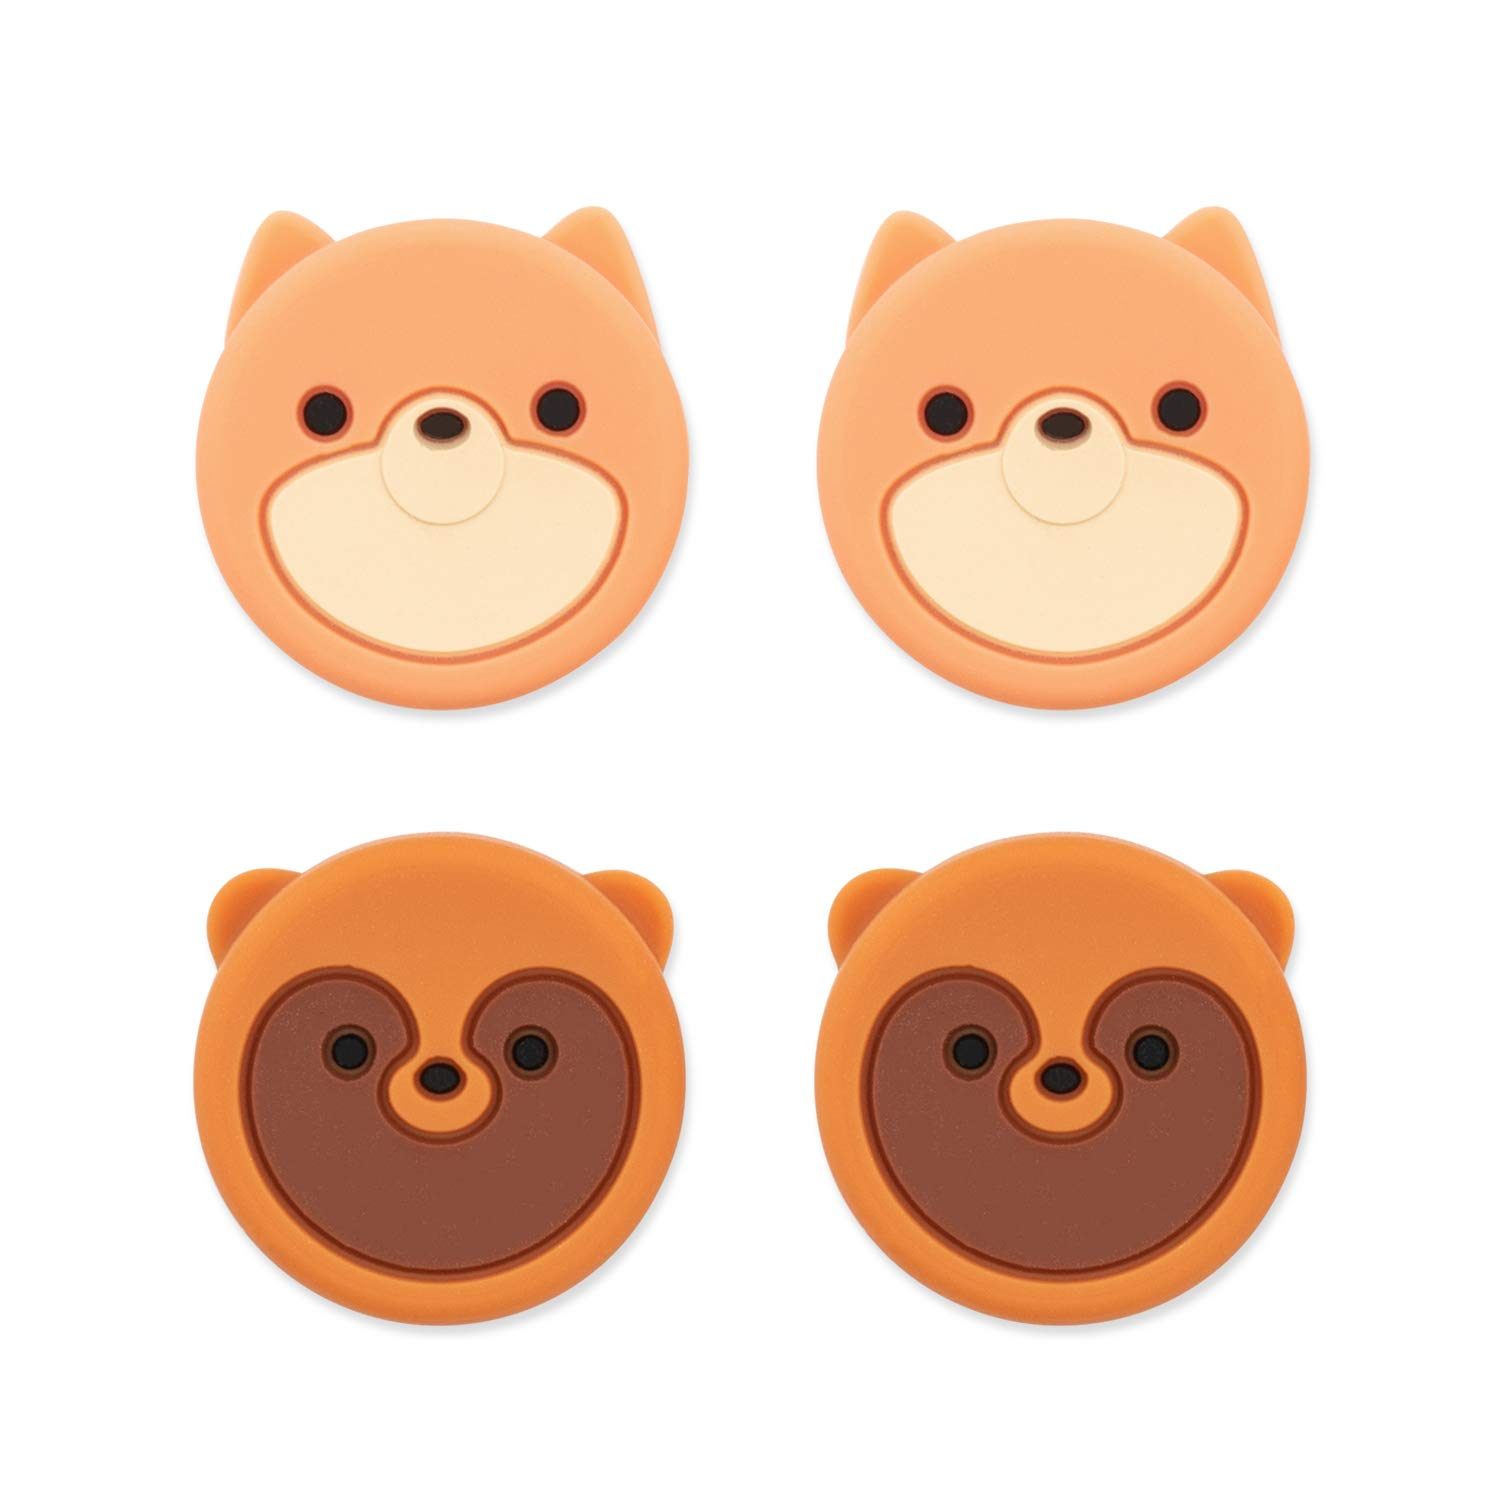 GeekShare Cute Animal Theme Thumb Grip Caps,Compatible with Nintendo Switch & Switch Lite Only,Soft Silicone Joystick Cover,4PICS -- Fox and Civet